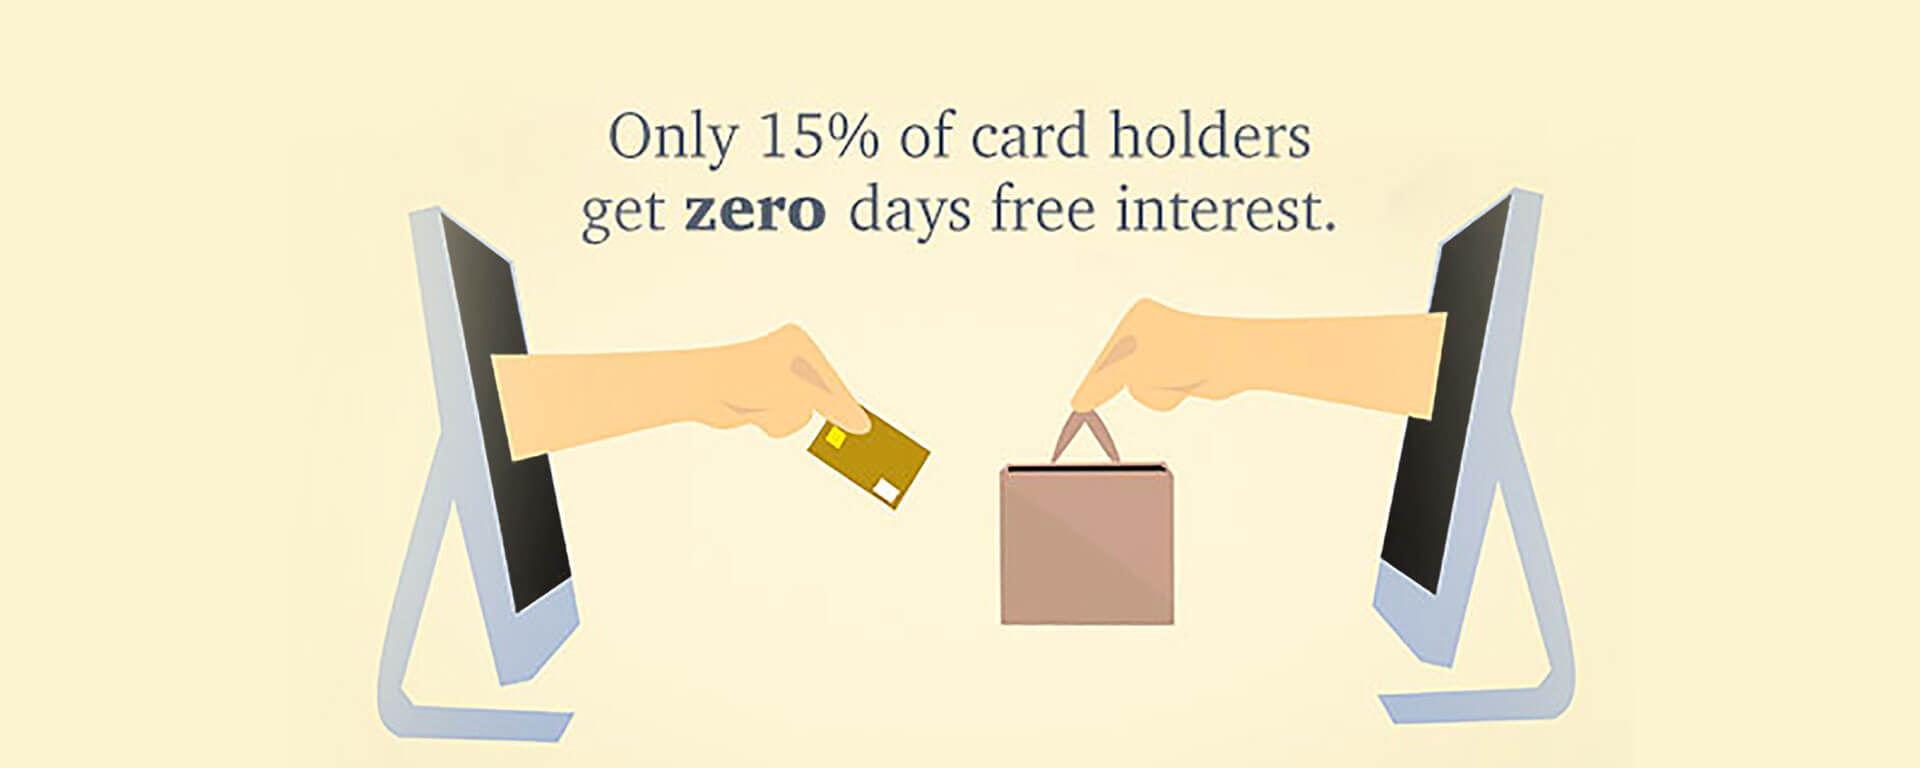 Only 15% of card holders get zero days free interest